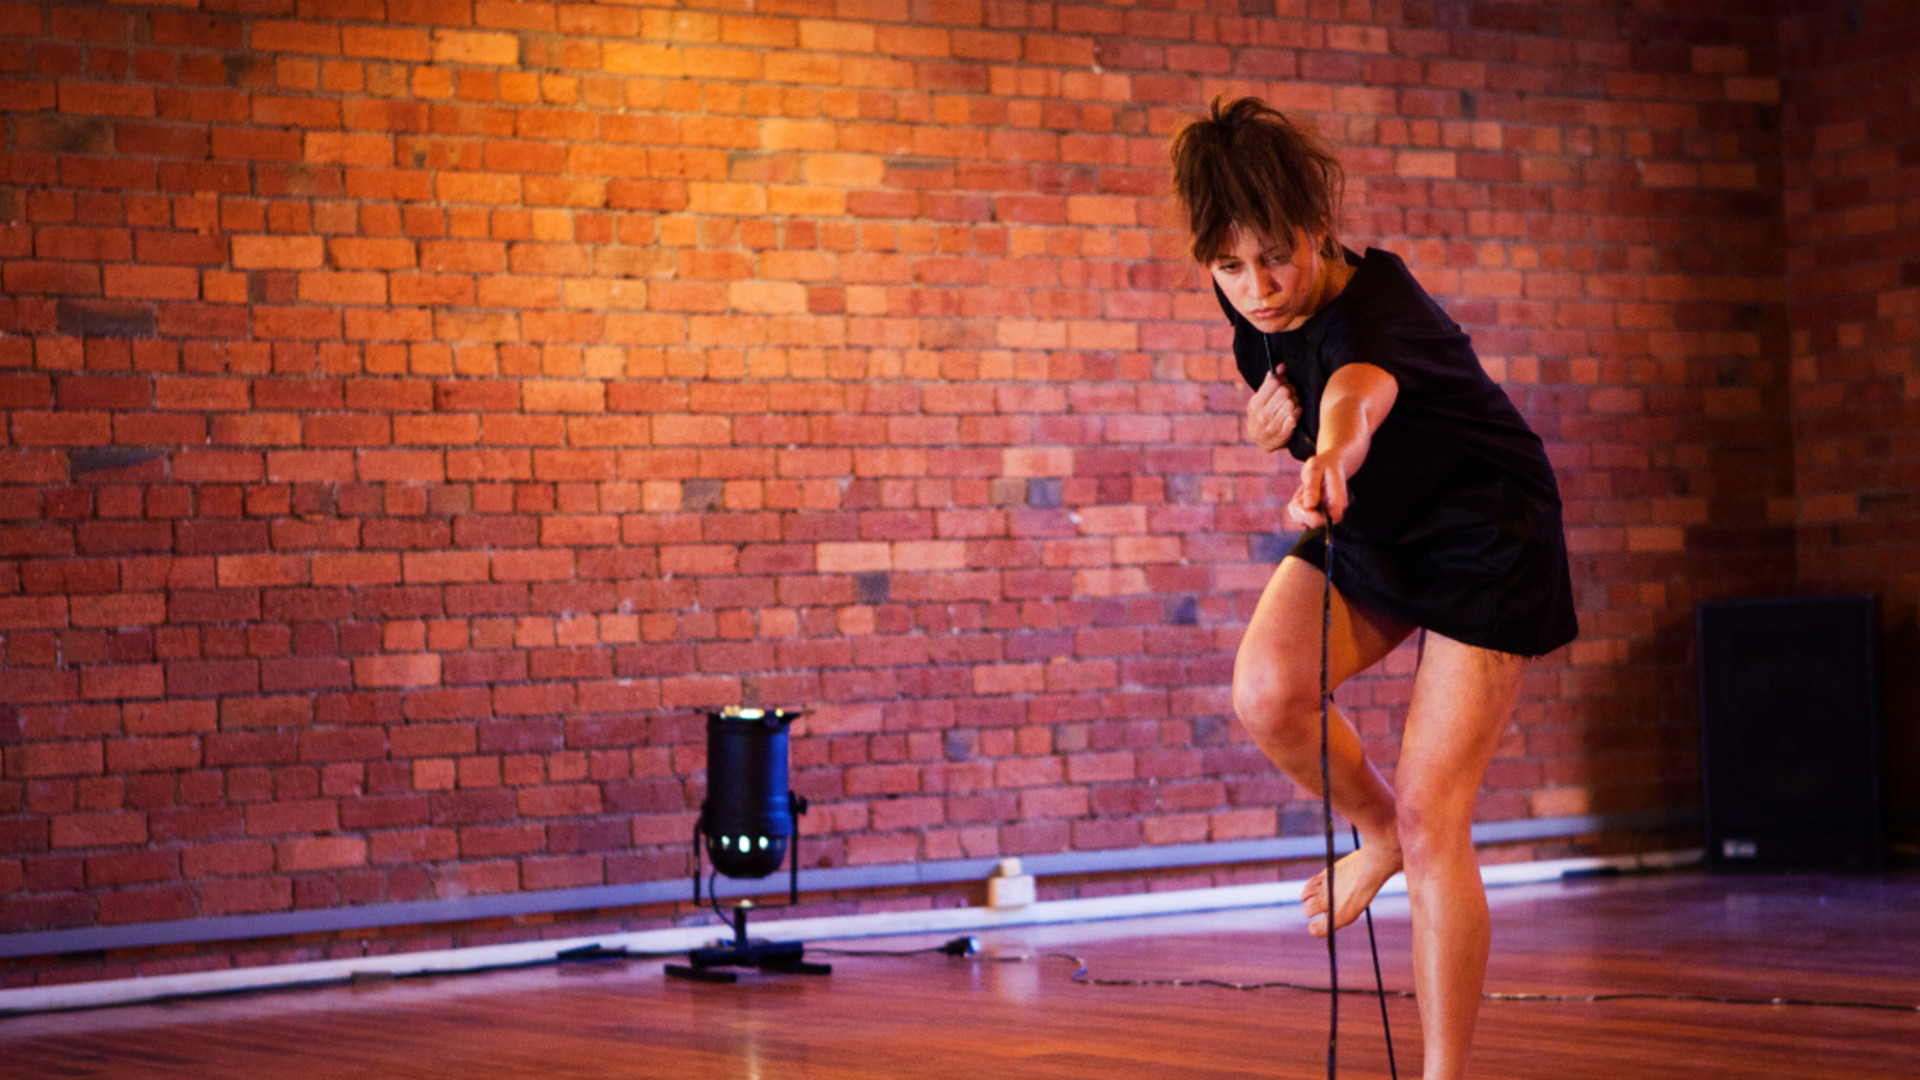 A woman in a short black dress pulls a wire that runs under the camera with a single light pointing up in the background in front of a brick wall